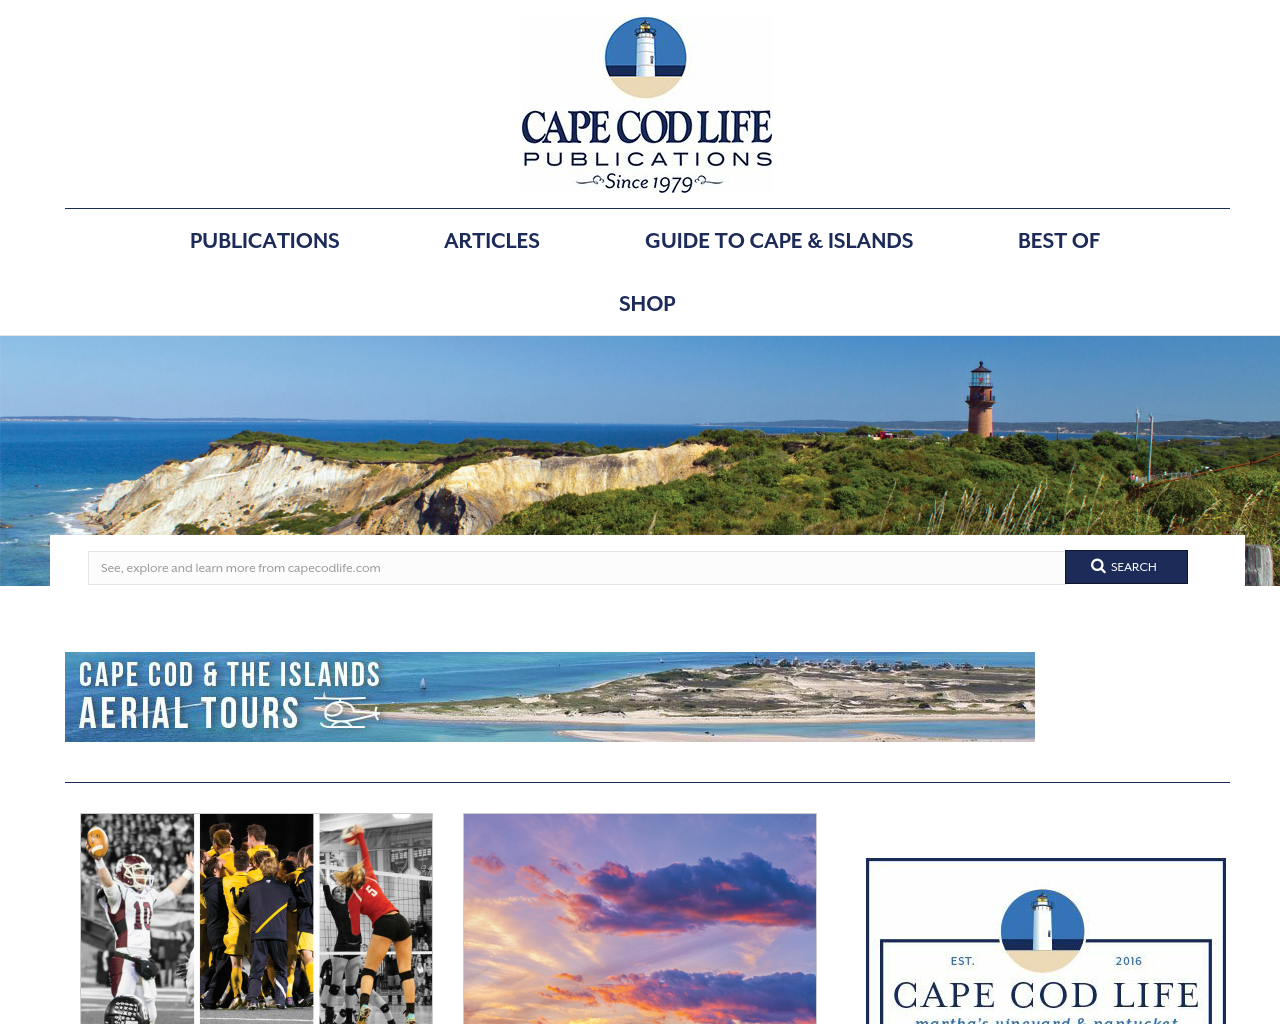 Cape-Cod-Life-Publications-Advertising-Reviews-Pricing